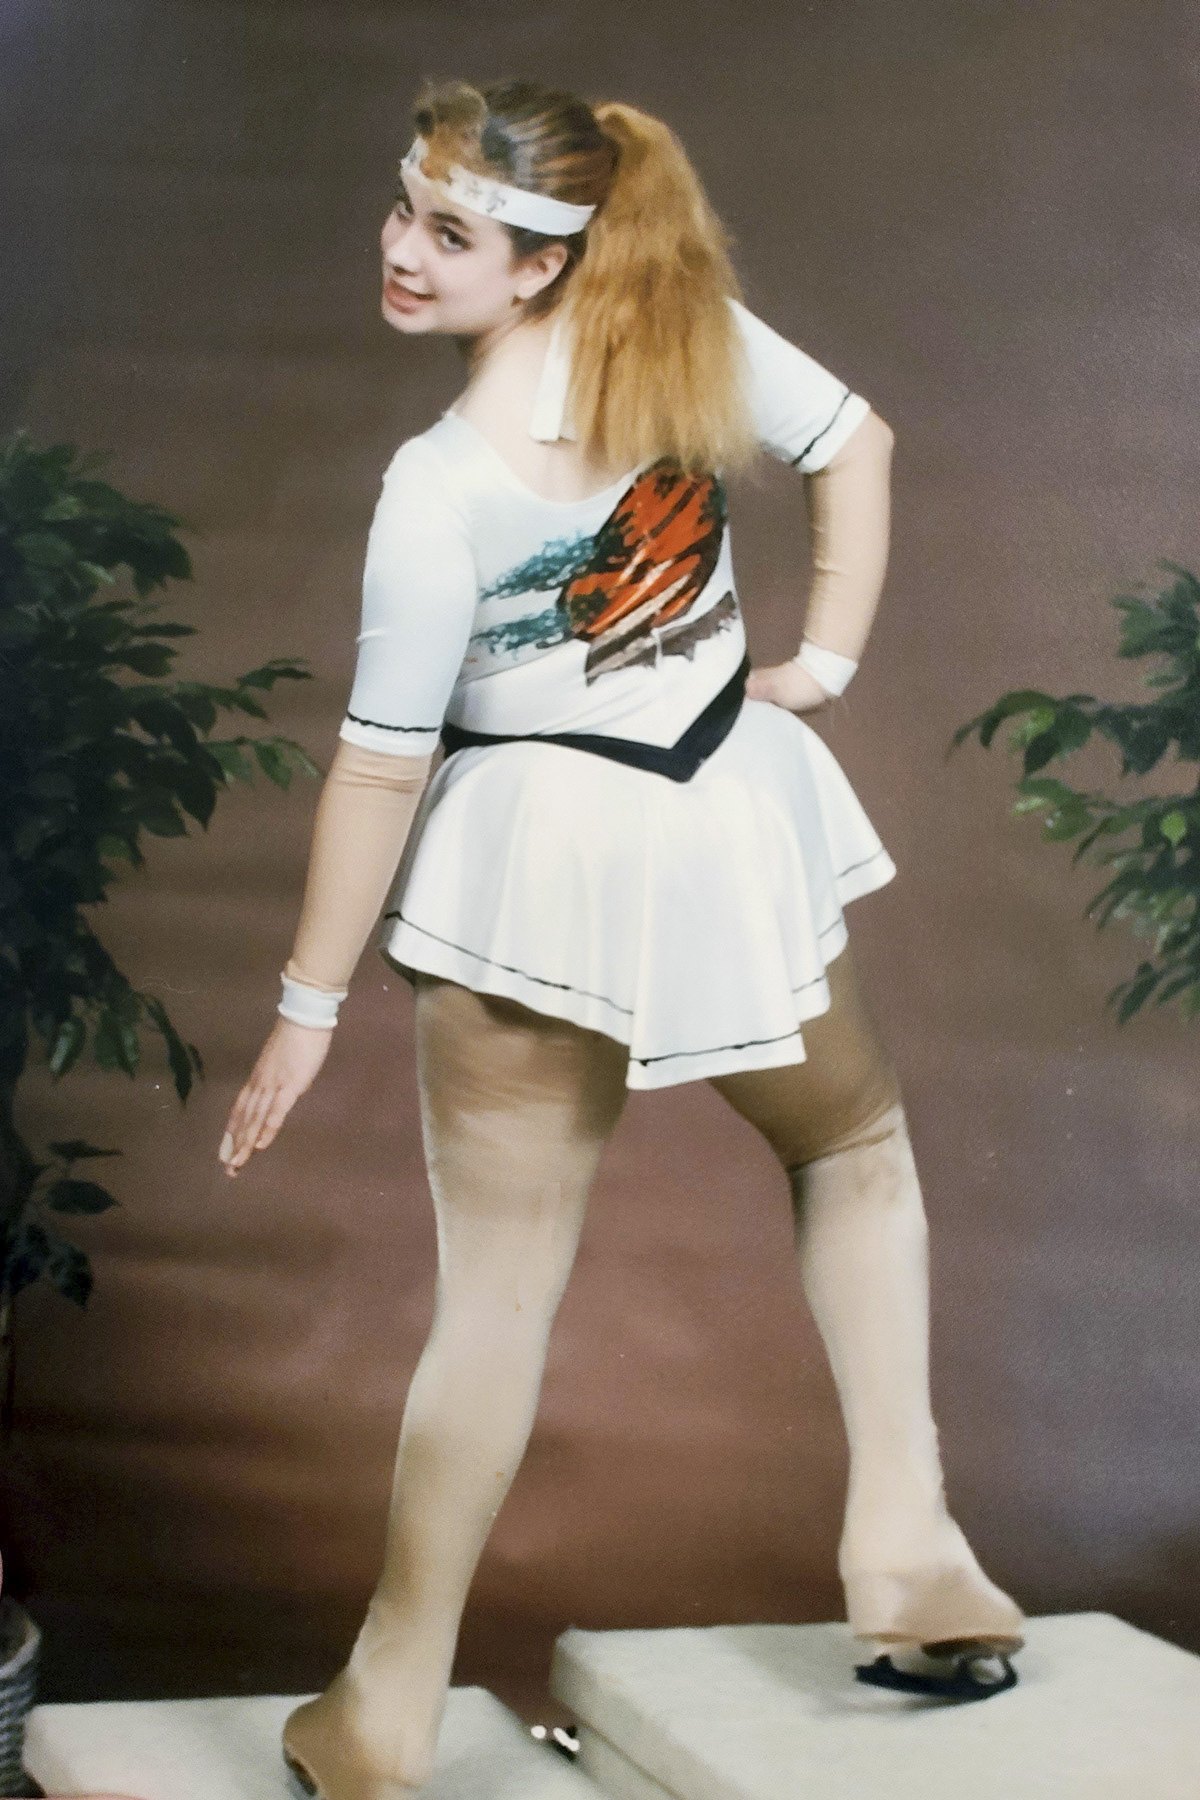 A figure skater on a podium. She has long strawberry blonde hair in a ponytail, and her back is to the camera.  She is wearing a white karate style skating dress.